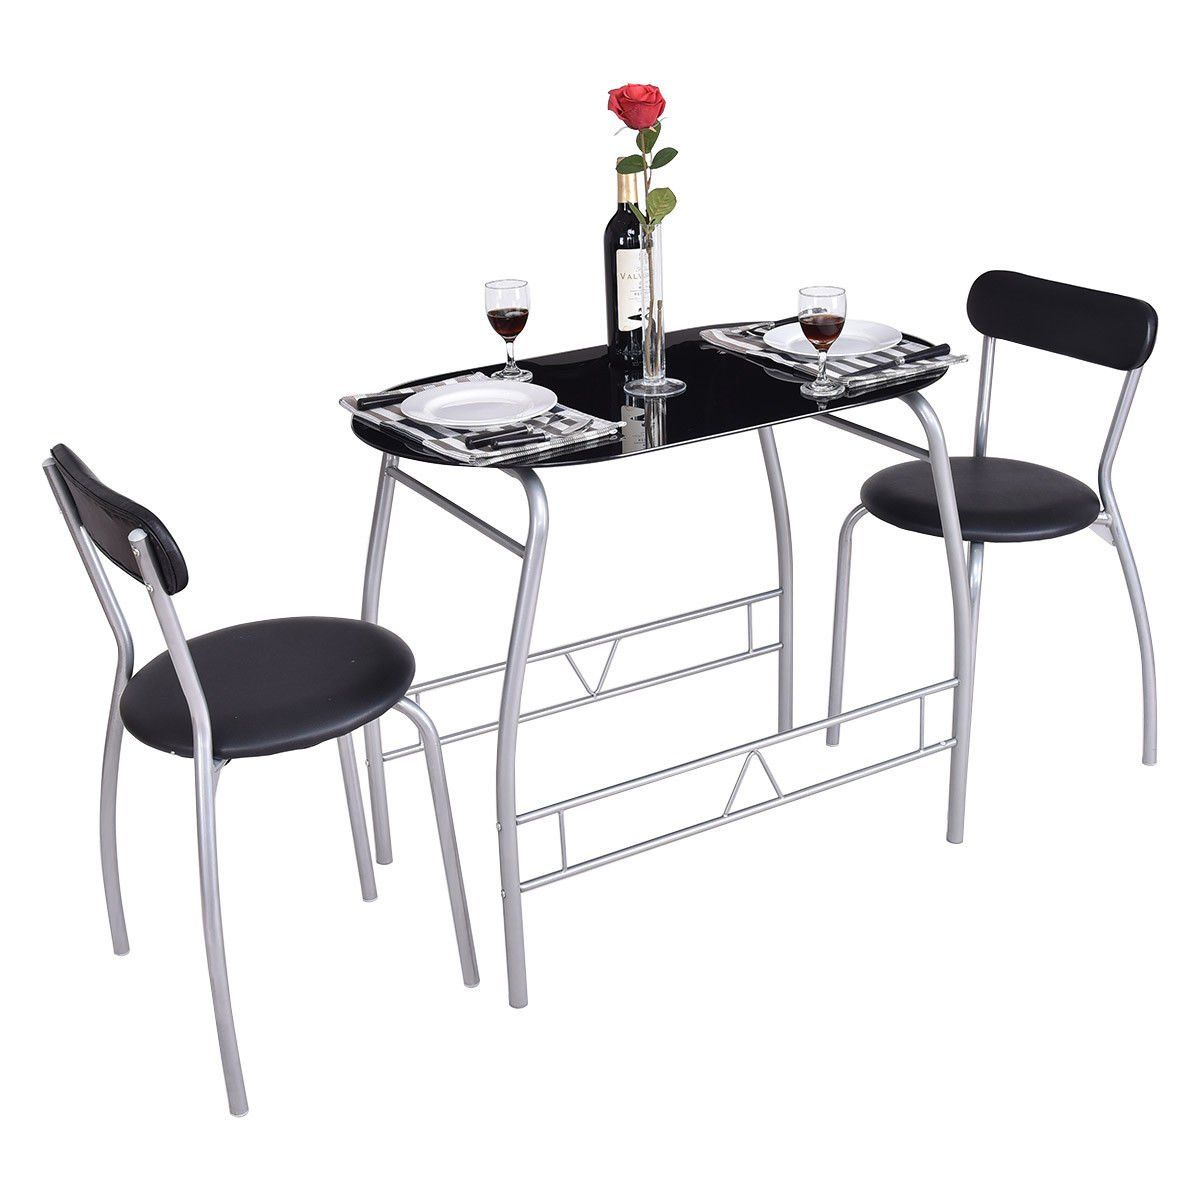 Global House Products GHP 8Pcs Steel Chairs with Tempered Glass